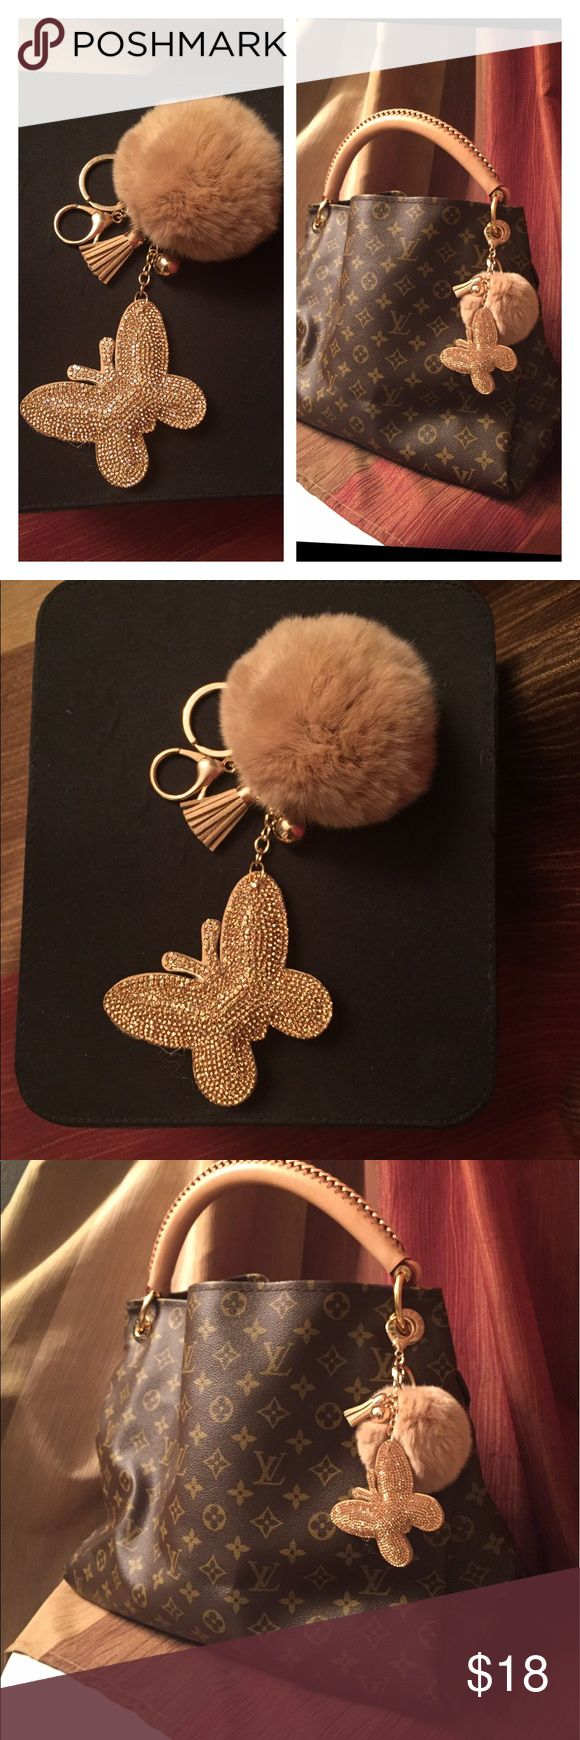 Beautiful keychain handbag charm Beautiful Pom and tassel with a gorgeous butterfly embellished with stones keychain handbag charm. Looks gorgeous on your handbags. This is an absolute must have accessory for your handbag.  Pic of front and back of charm . Price is firm  Accessories Key & Card Holders